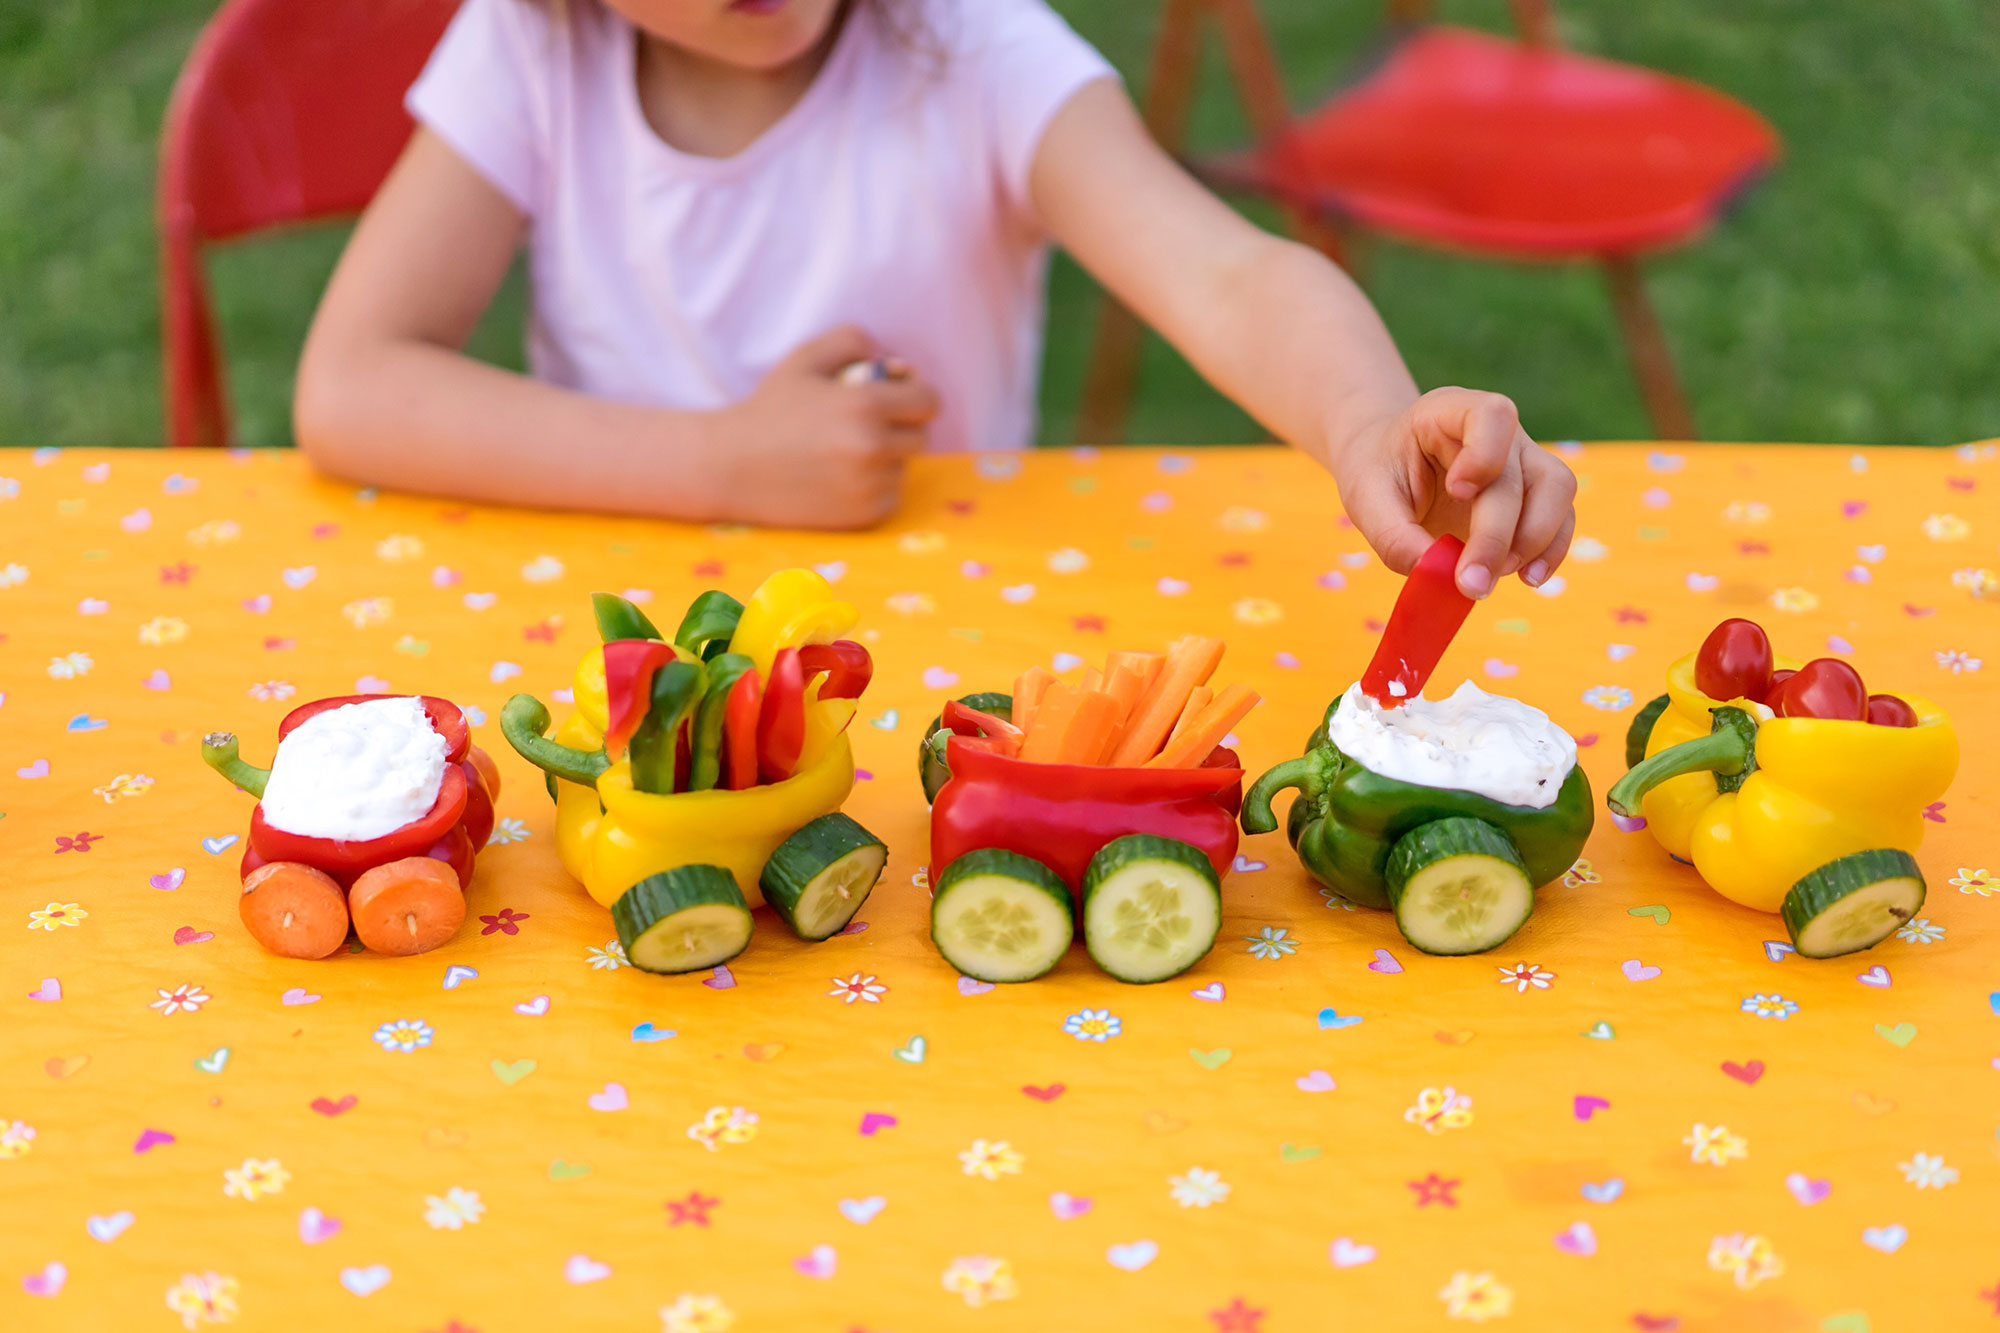 Healthy Party Food Ideas For Kids That Curb The Sugar Rush